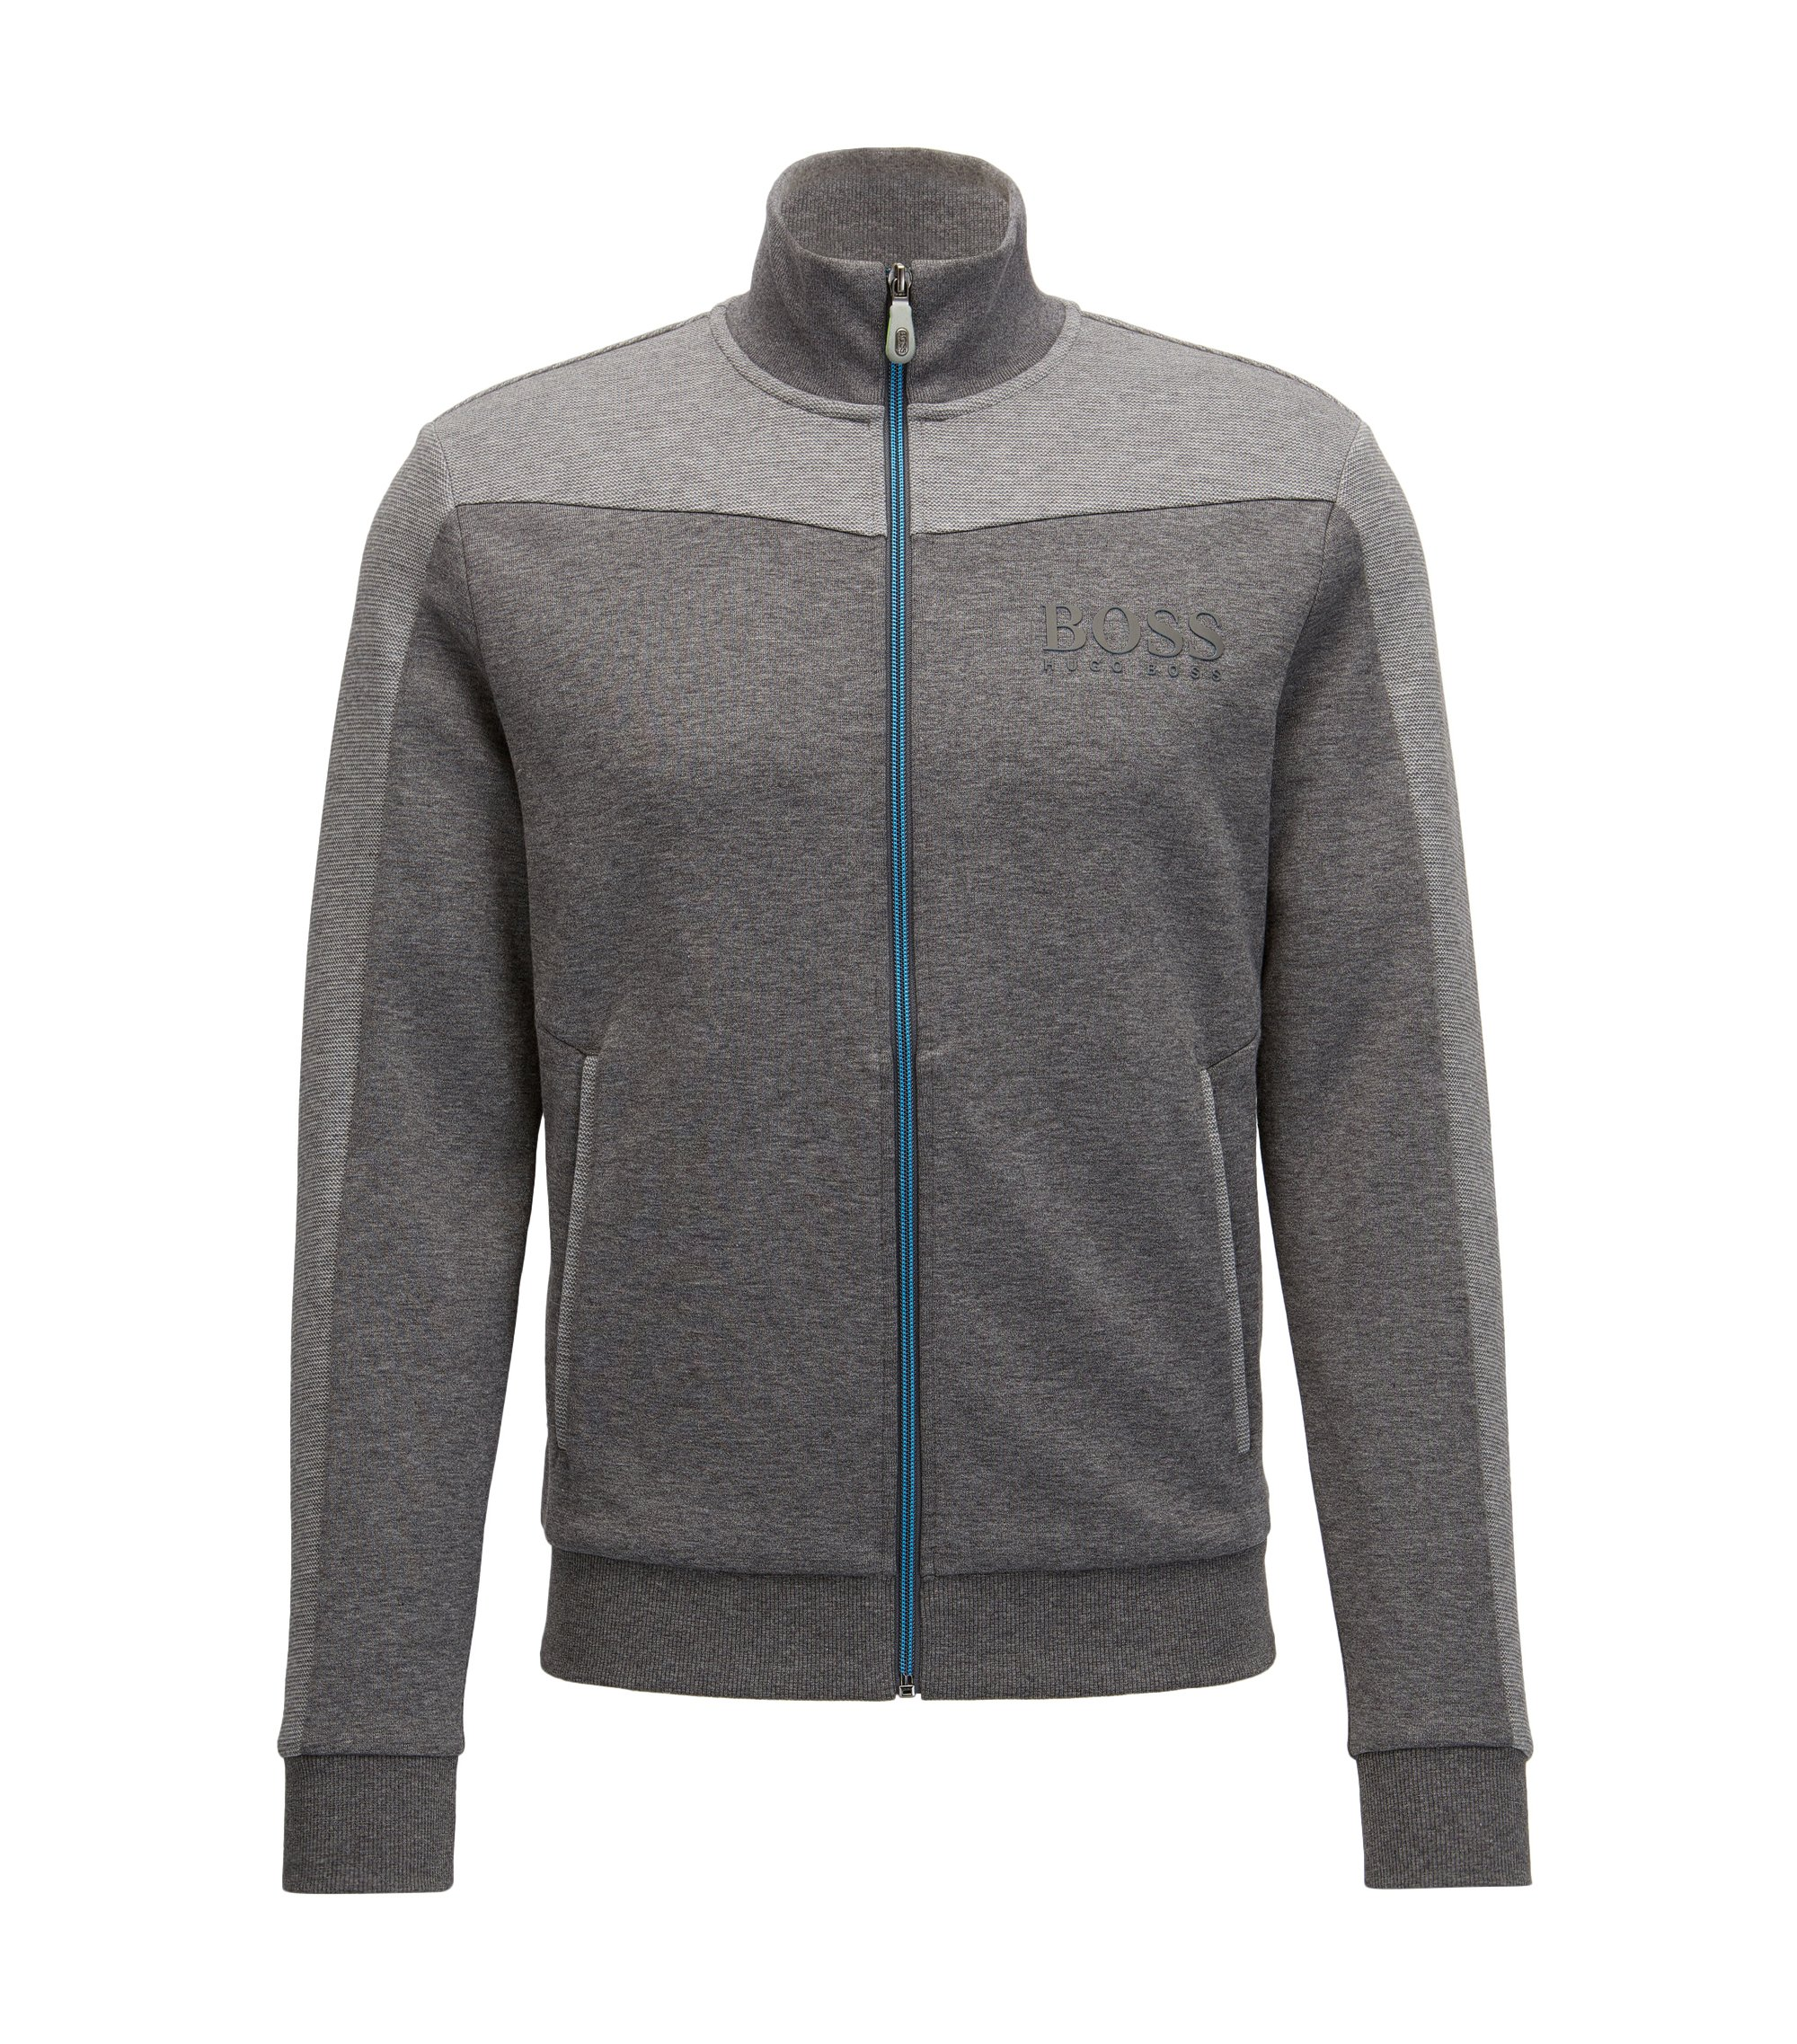 Cotton Blend Full-Zip Jacket | Skaz, Grey